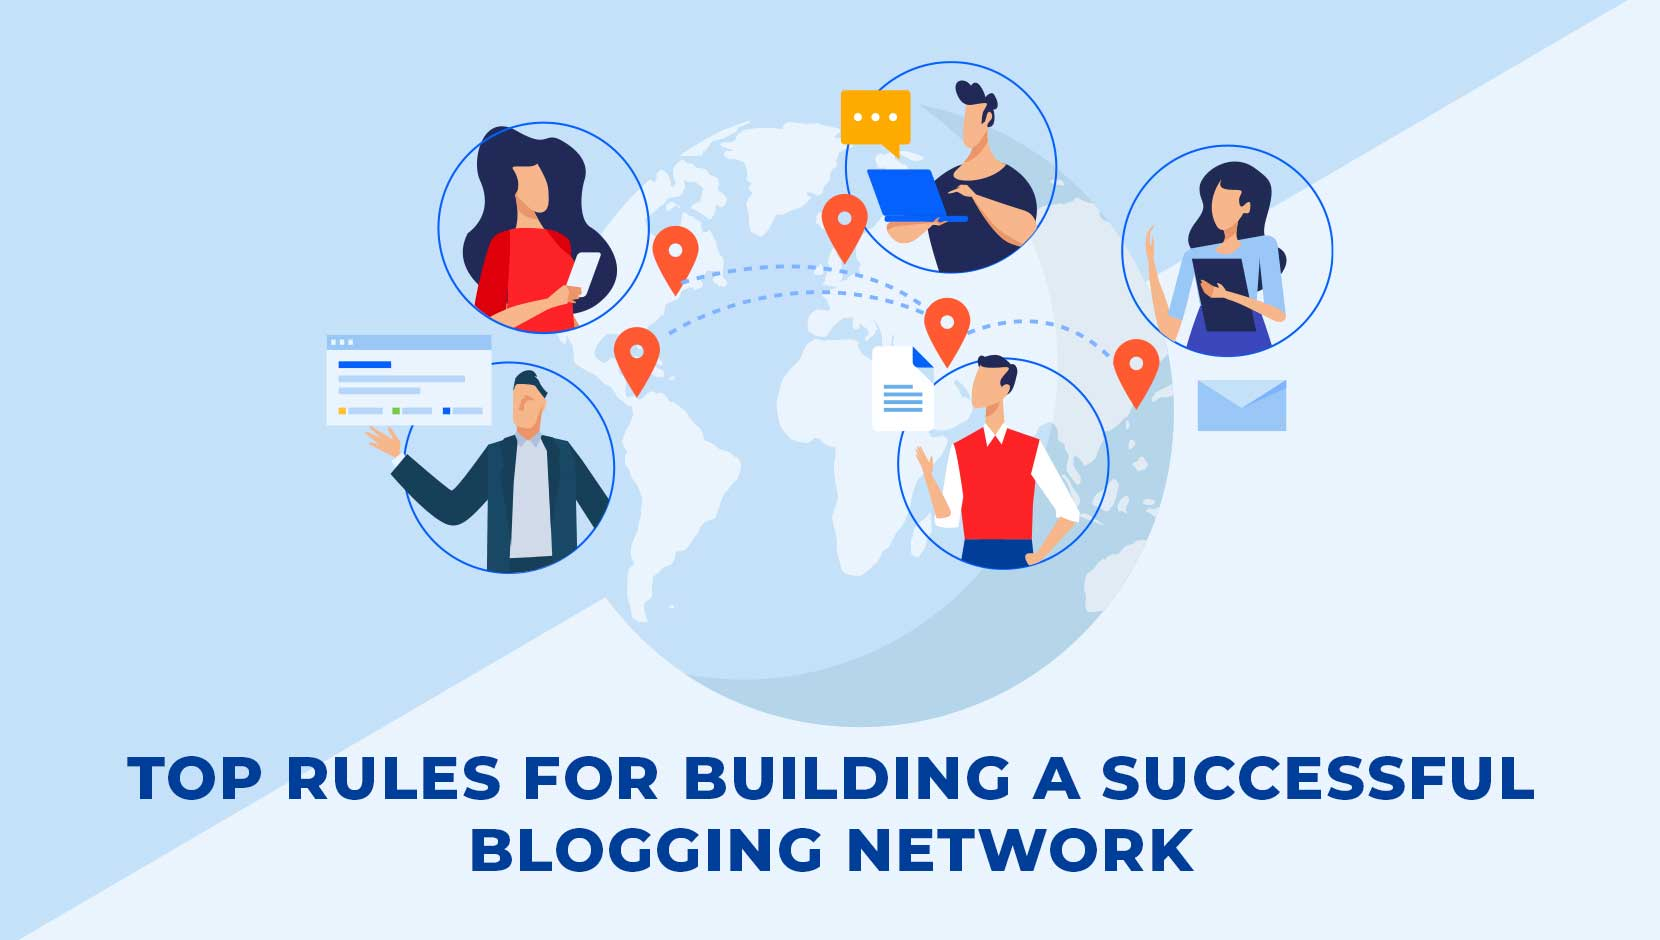 Top 5 Rules for Building a Successful Blogging Network